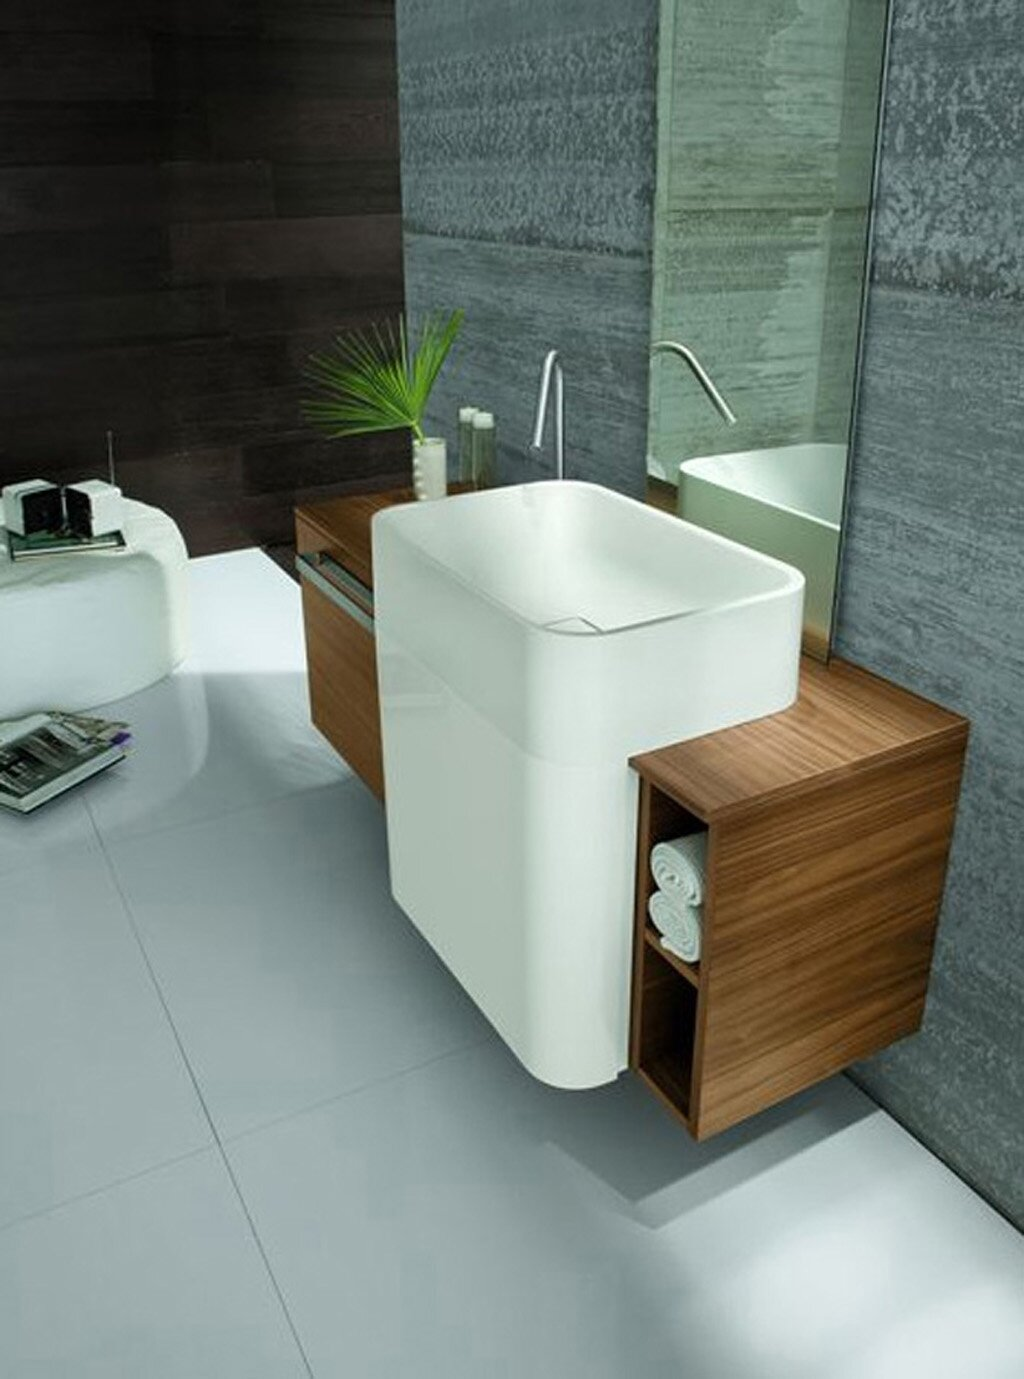 Bathroom Sink Decor : Top 15 Bathroom Sink Designs And Models MostBeautifulThings